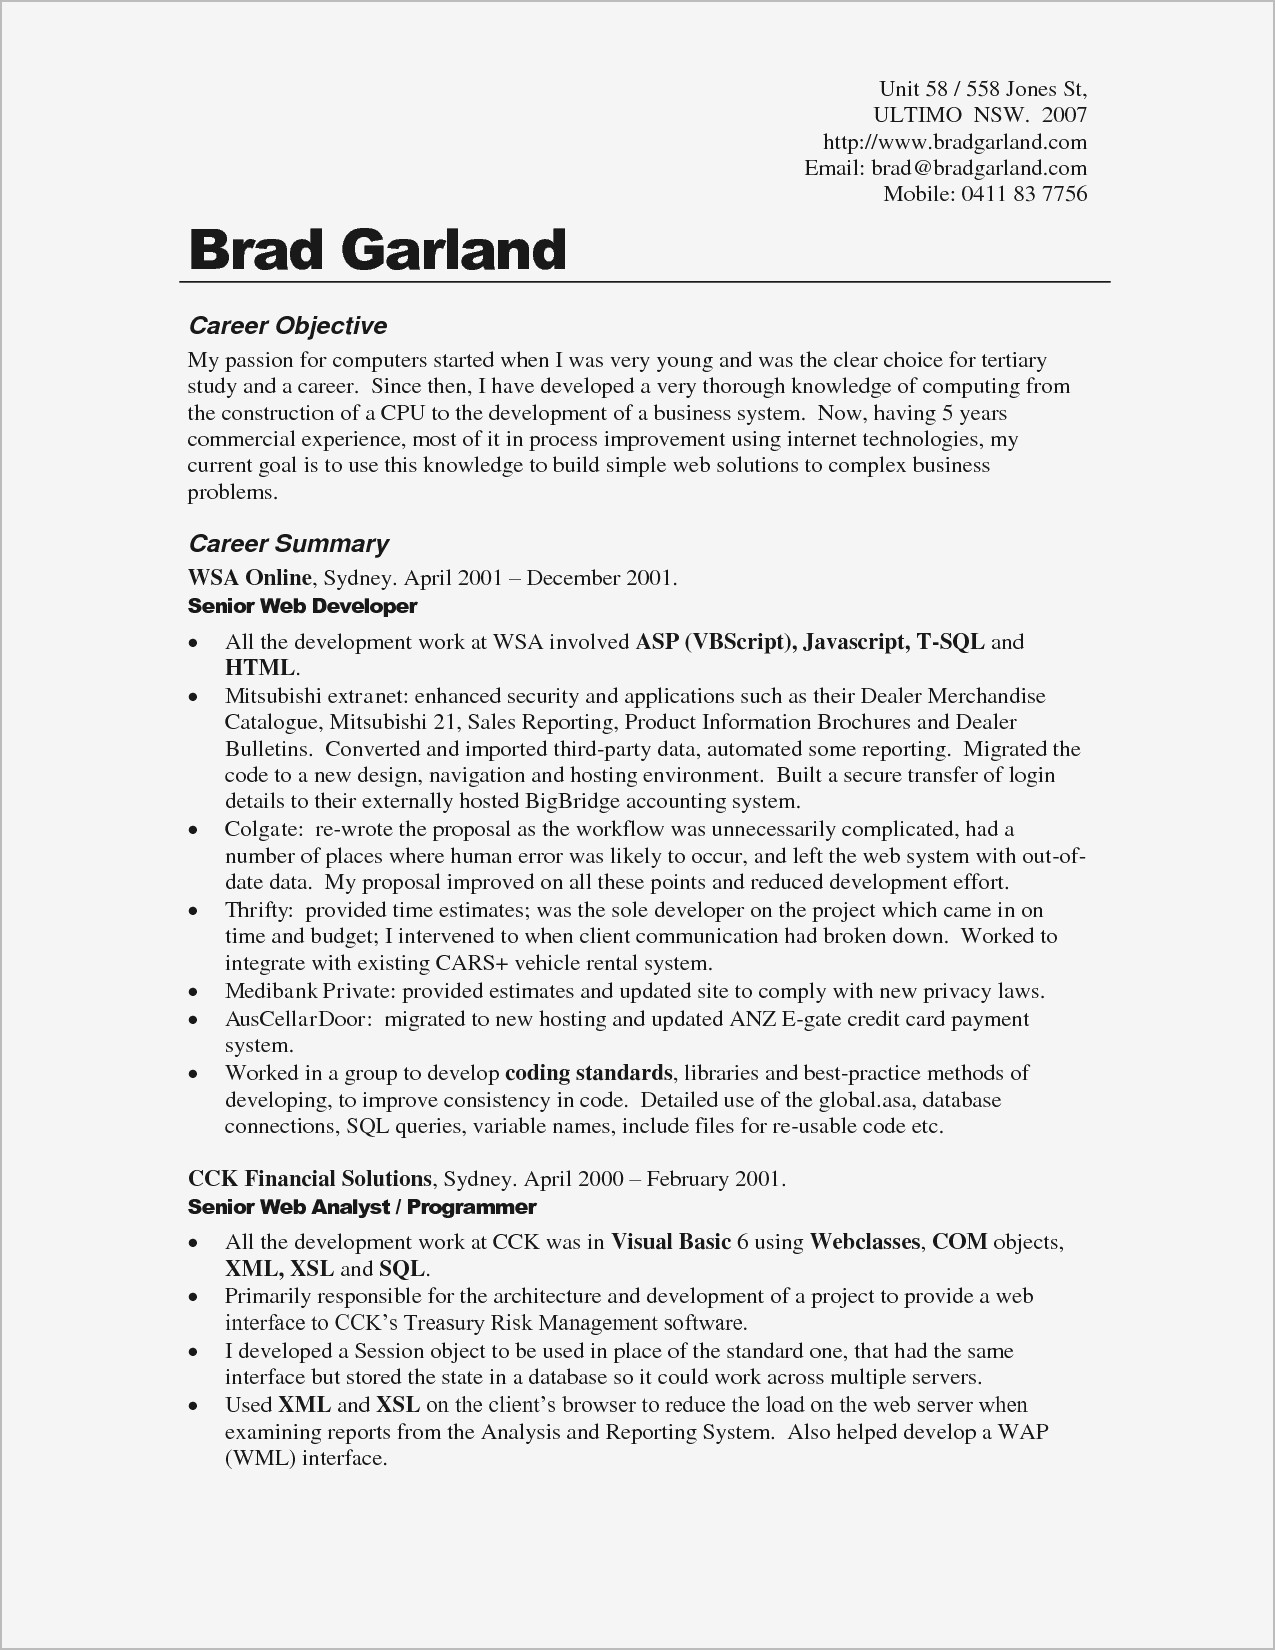 Resume Objective for Sales - 20 Samples Resume Objectives Examples